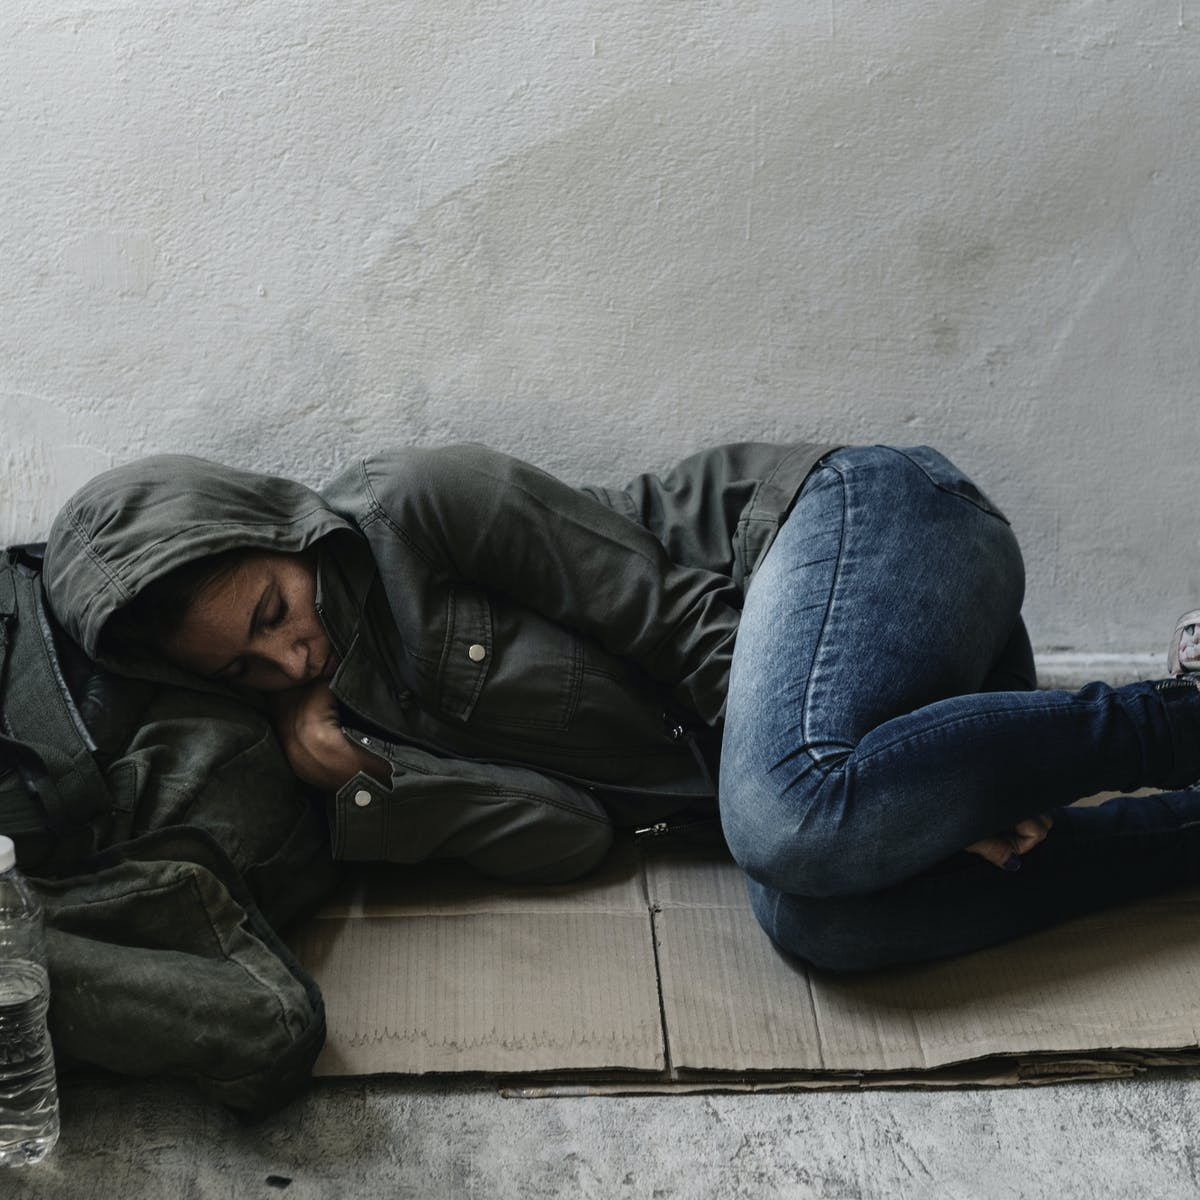 Just a piece of meat': how homeless women have little choice but to